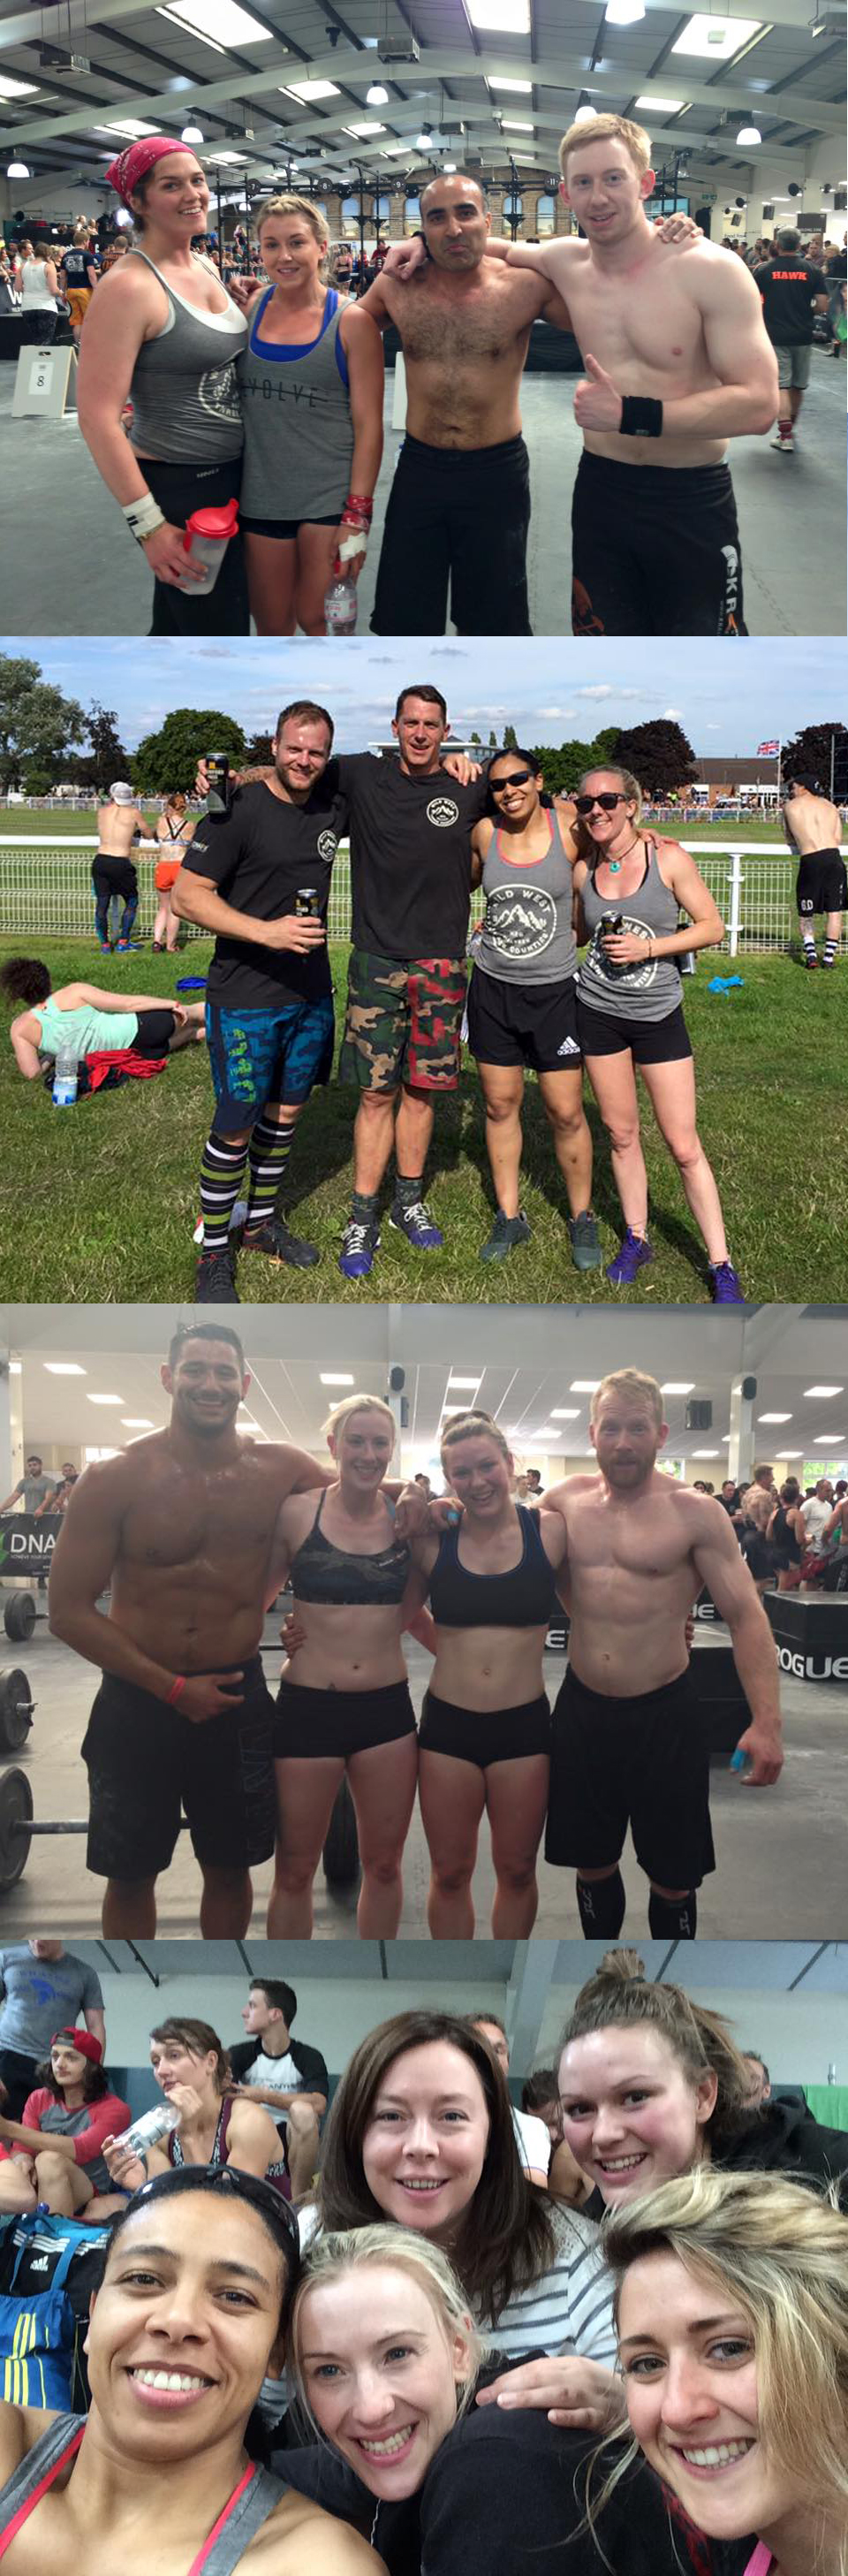 Some of the many faces repping Second City CrossFit this weekend